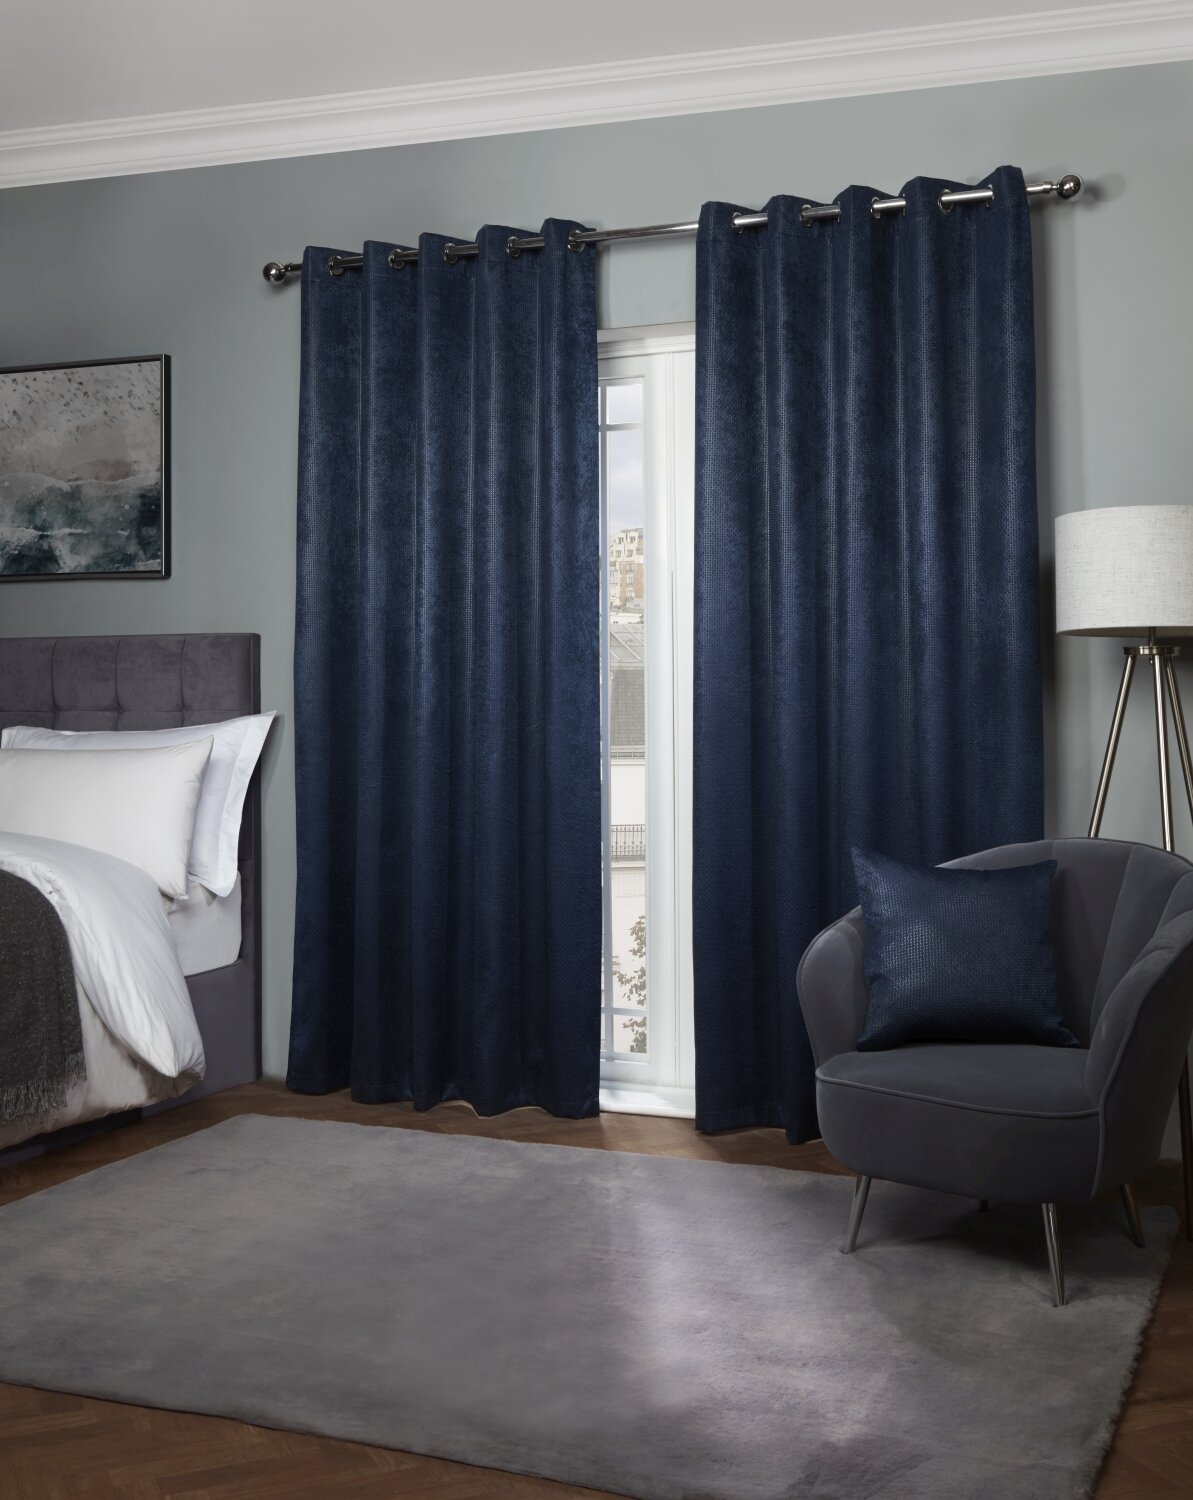 Soundproof Curtains You Ll Love Wayfair Co Uk